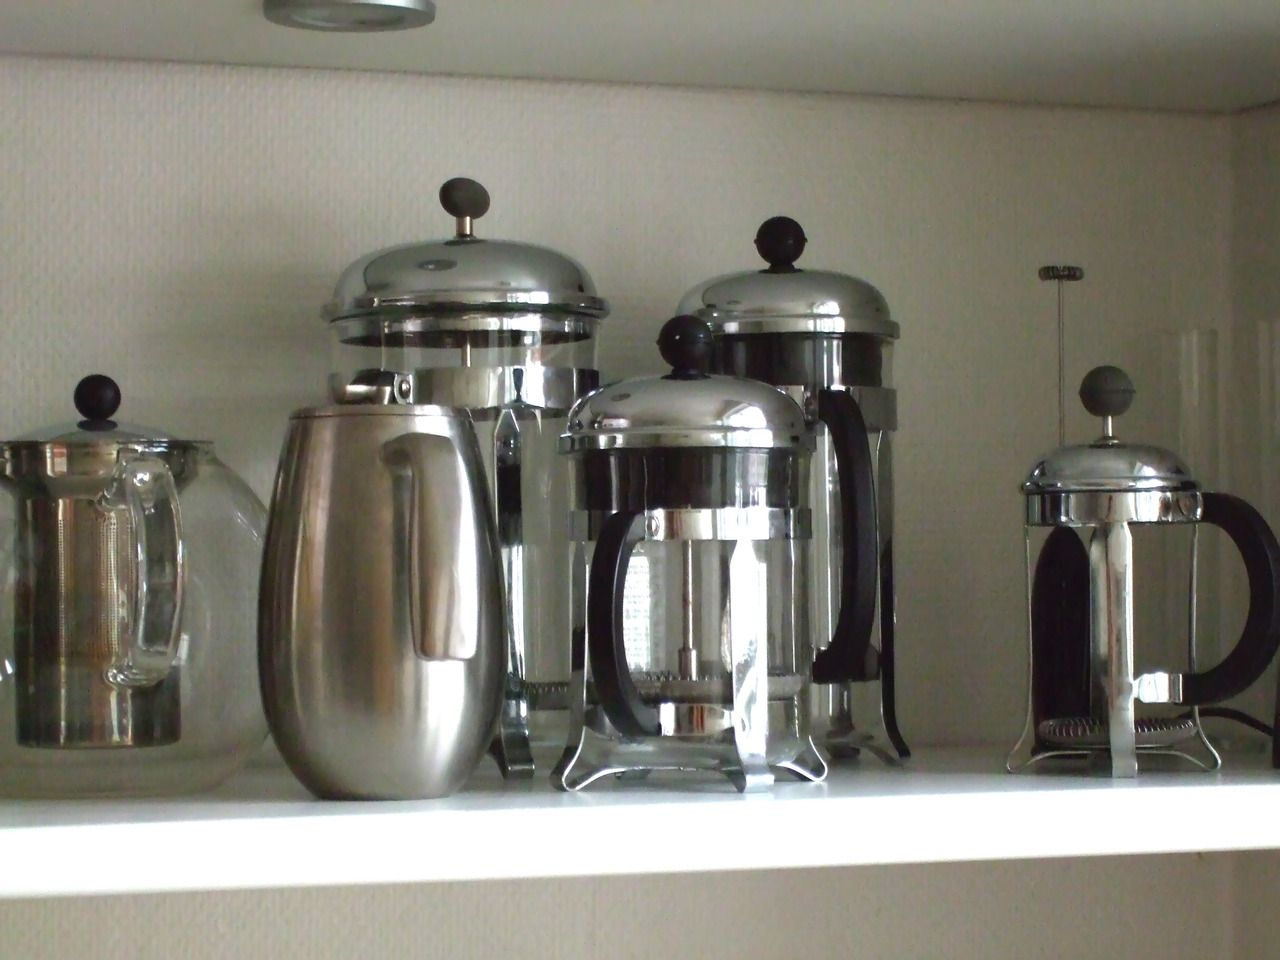 In Scandinavia, you may find a shelf in a kitchen with several sizes of Bodum (French Press) coffee makers. Best coffee I've ever had… (image by Susan)